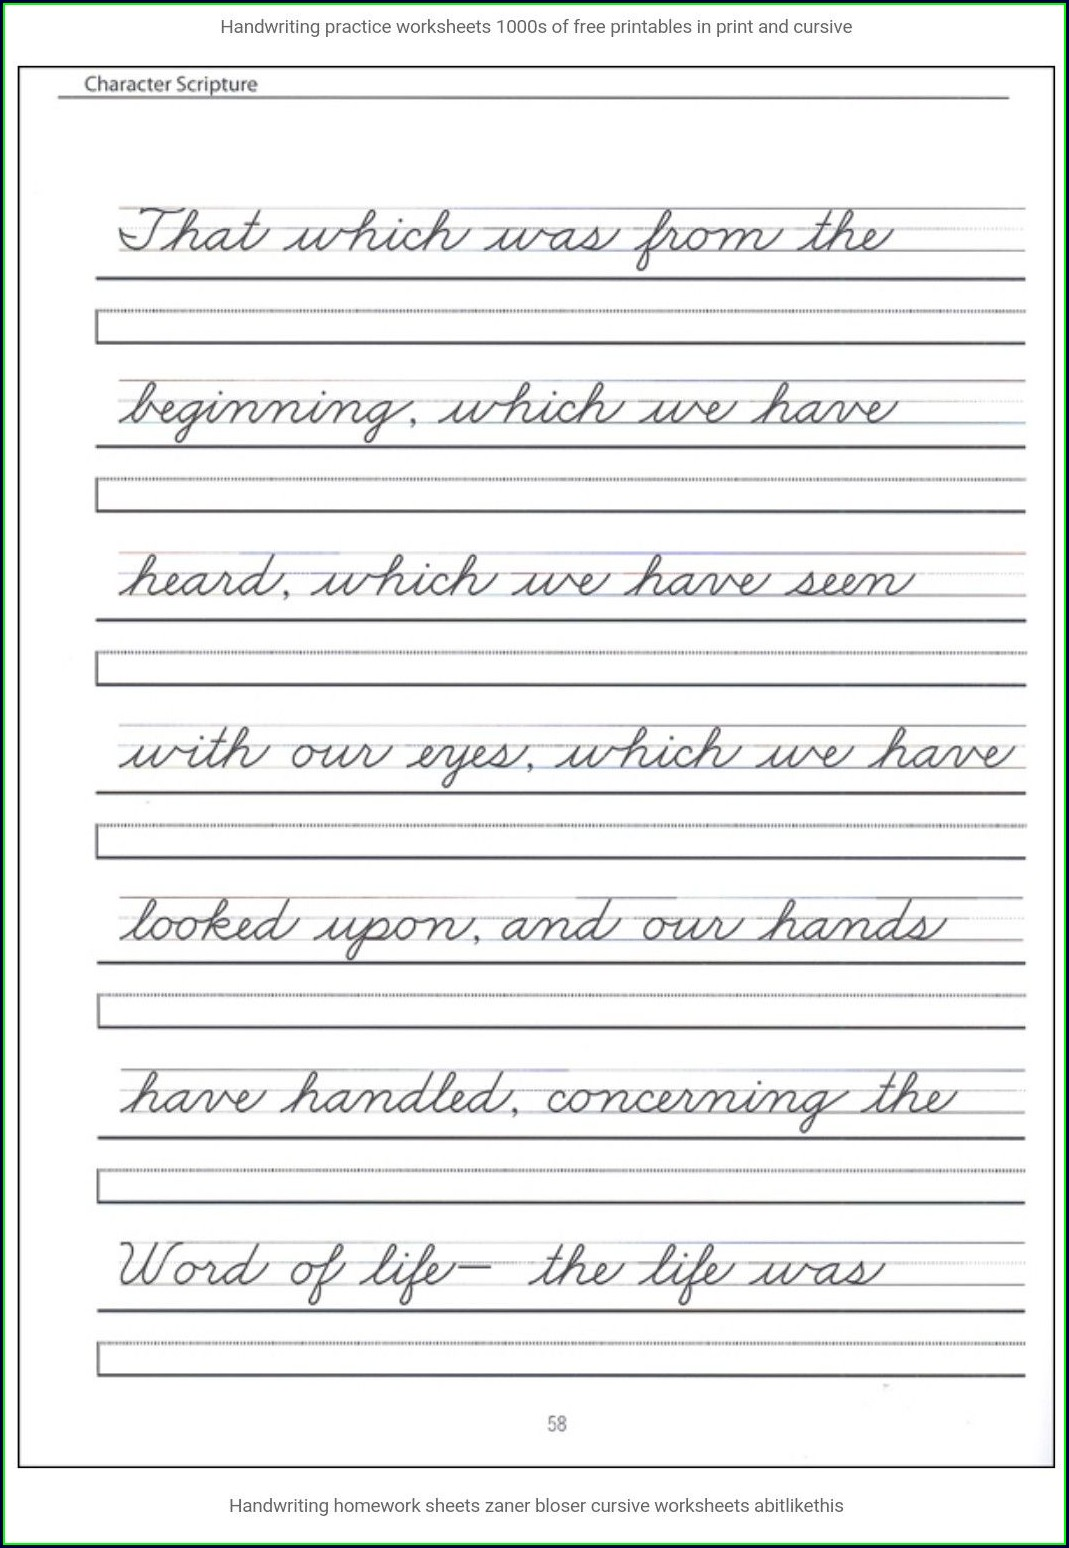 Worksheet Cursive Writing Practice Sheets For Adults